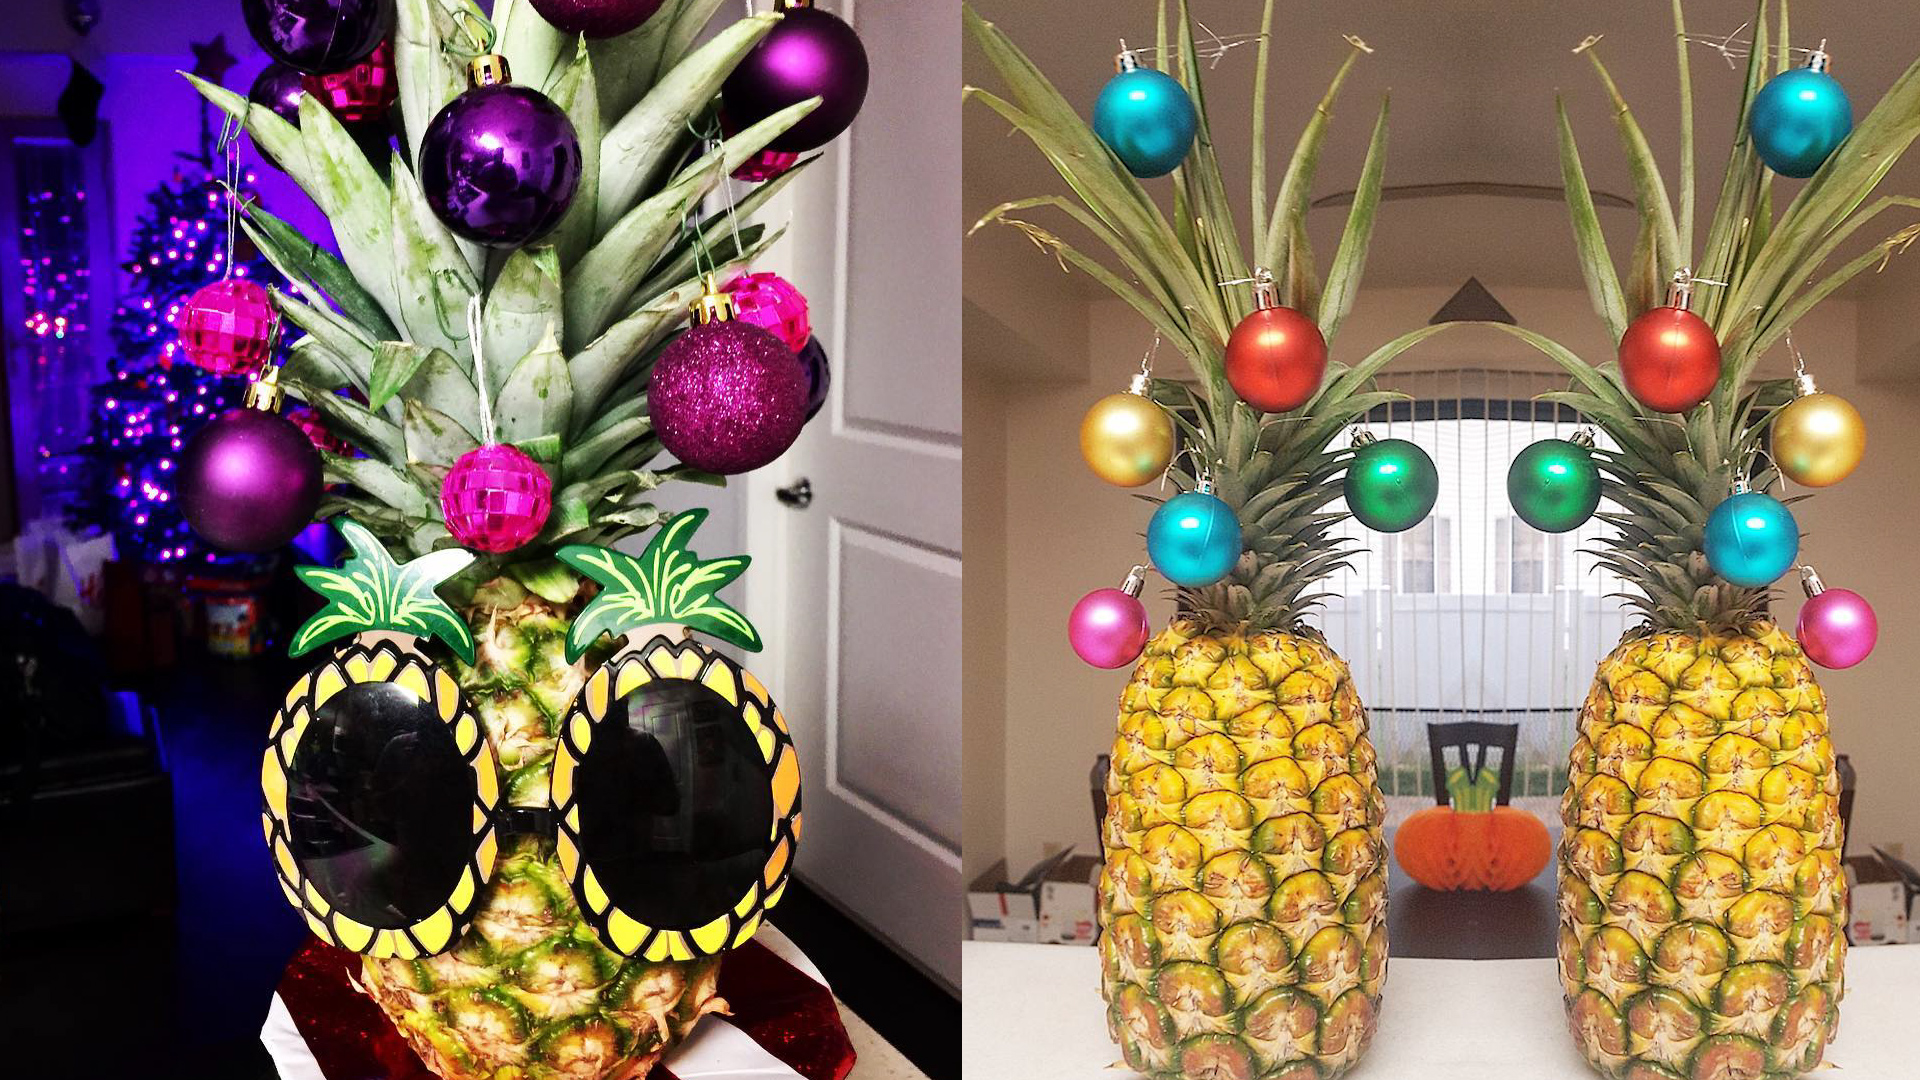 Christmas Pineapple.People Are Decorating Their Pineapples As Christmas Trees